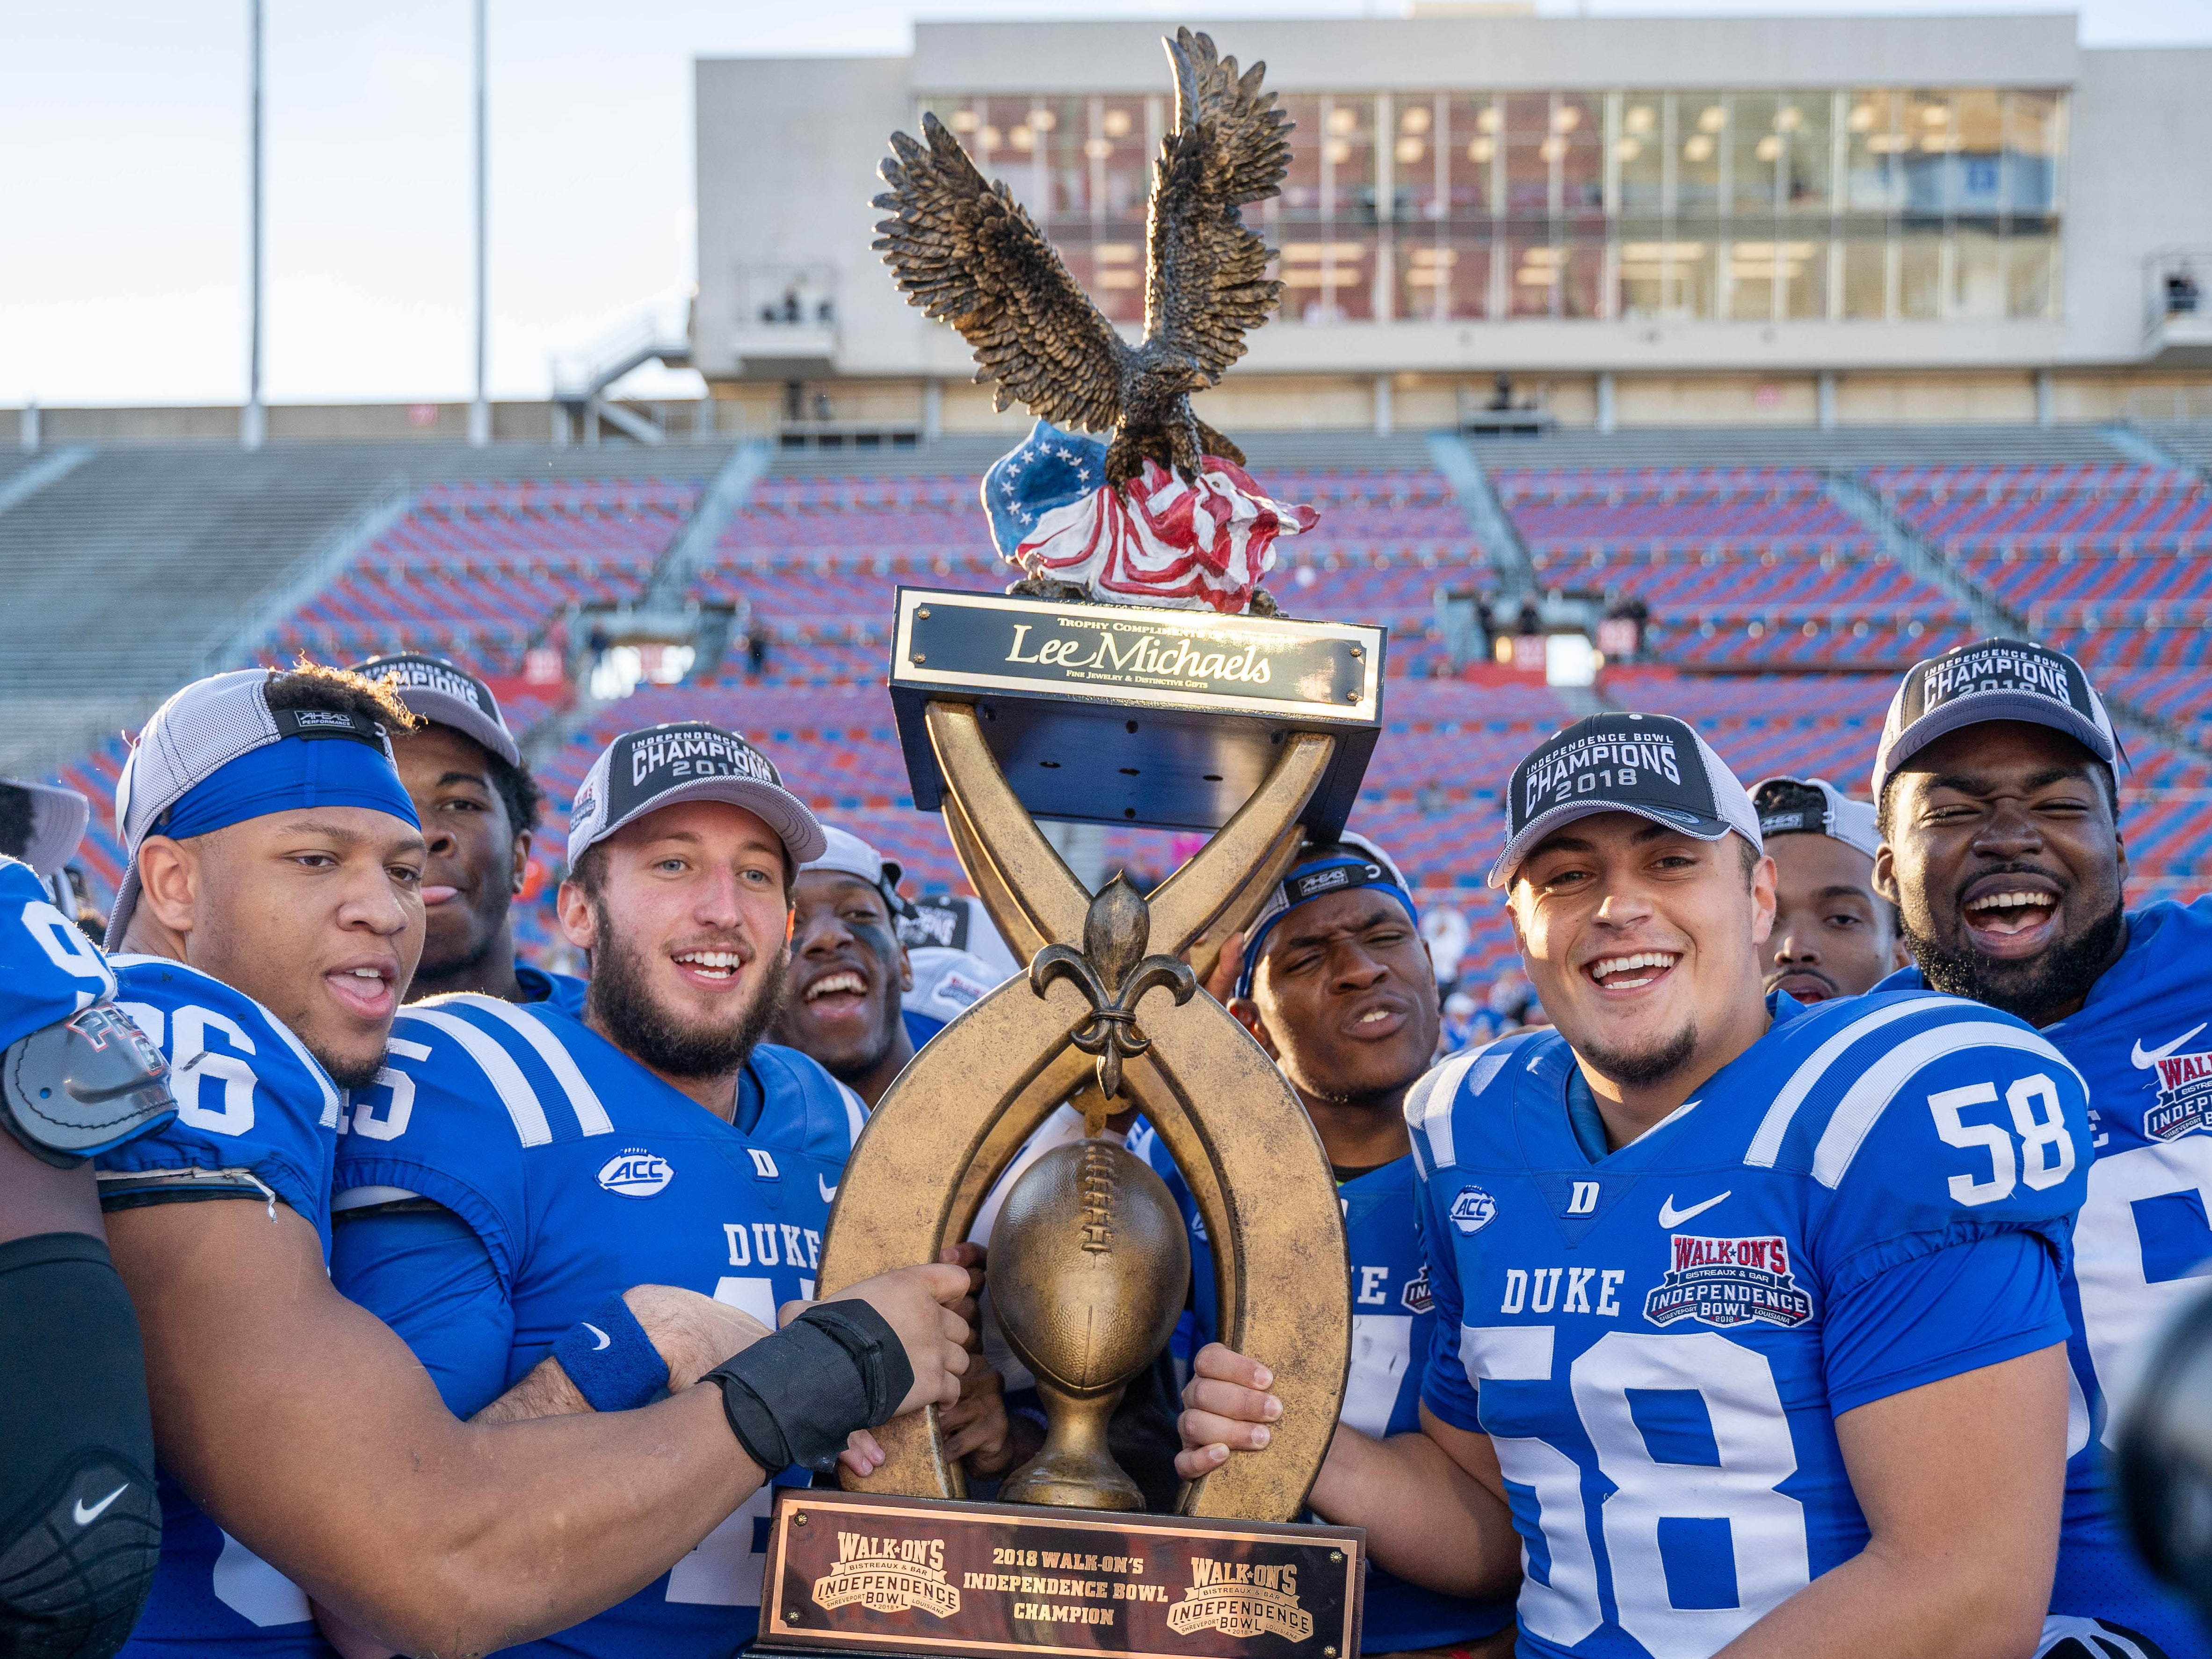 Duke players celebrate their victory in the Independence Bowl.